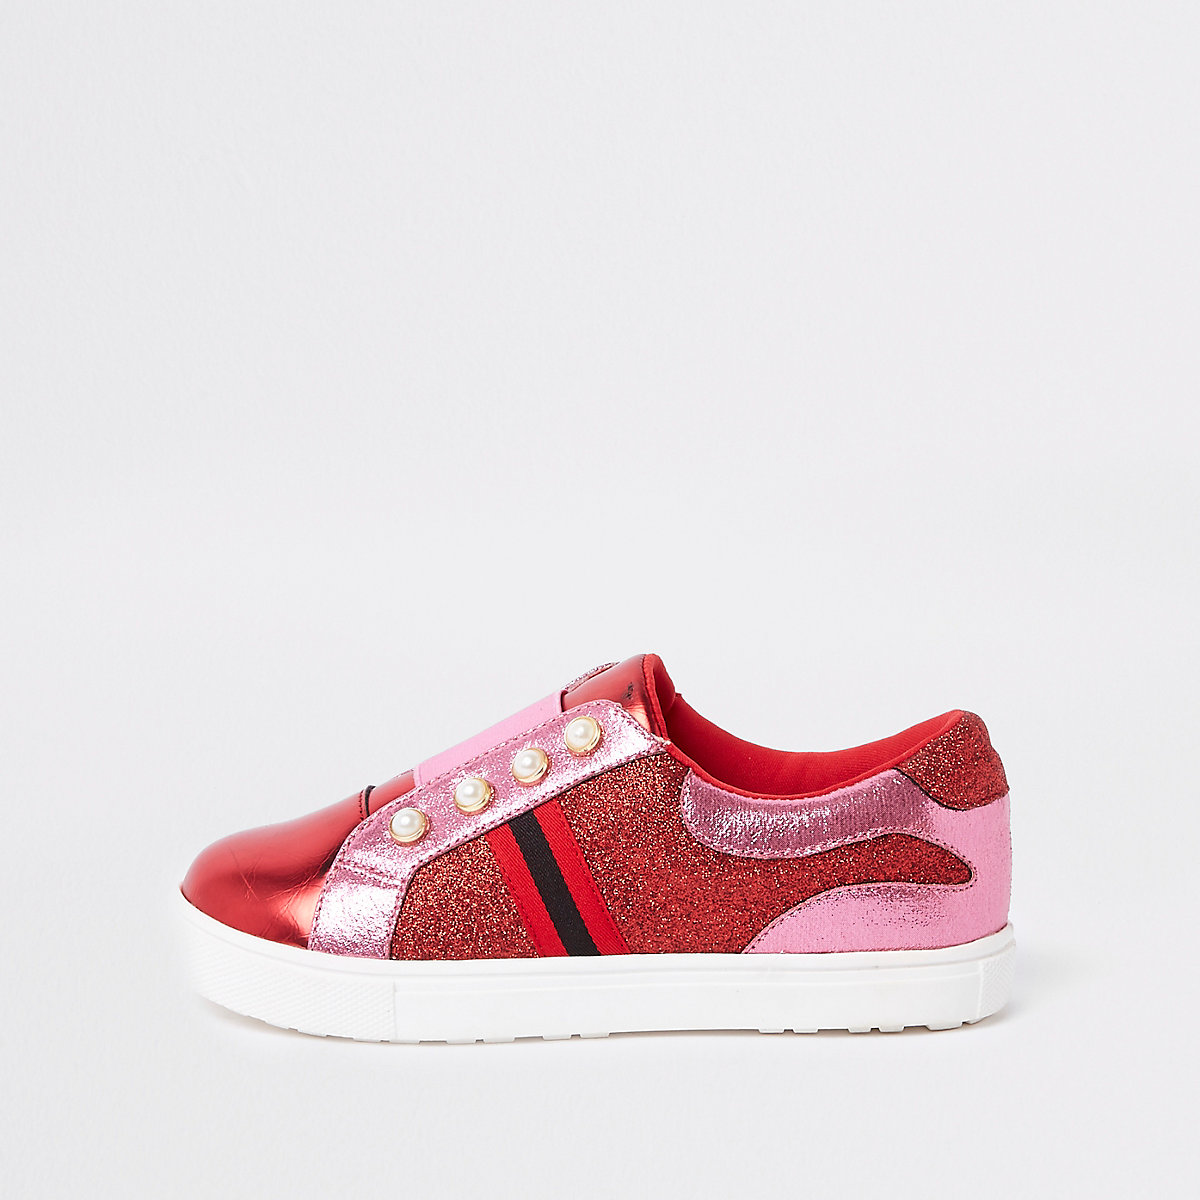 Girls pink red pearl glitter plimsolls